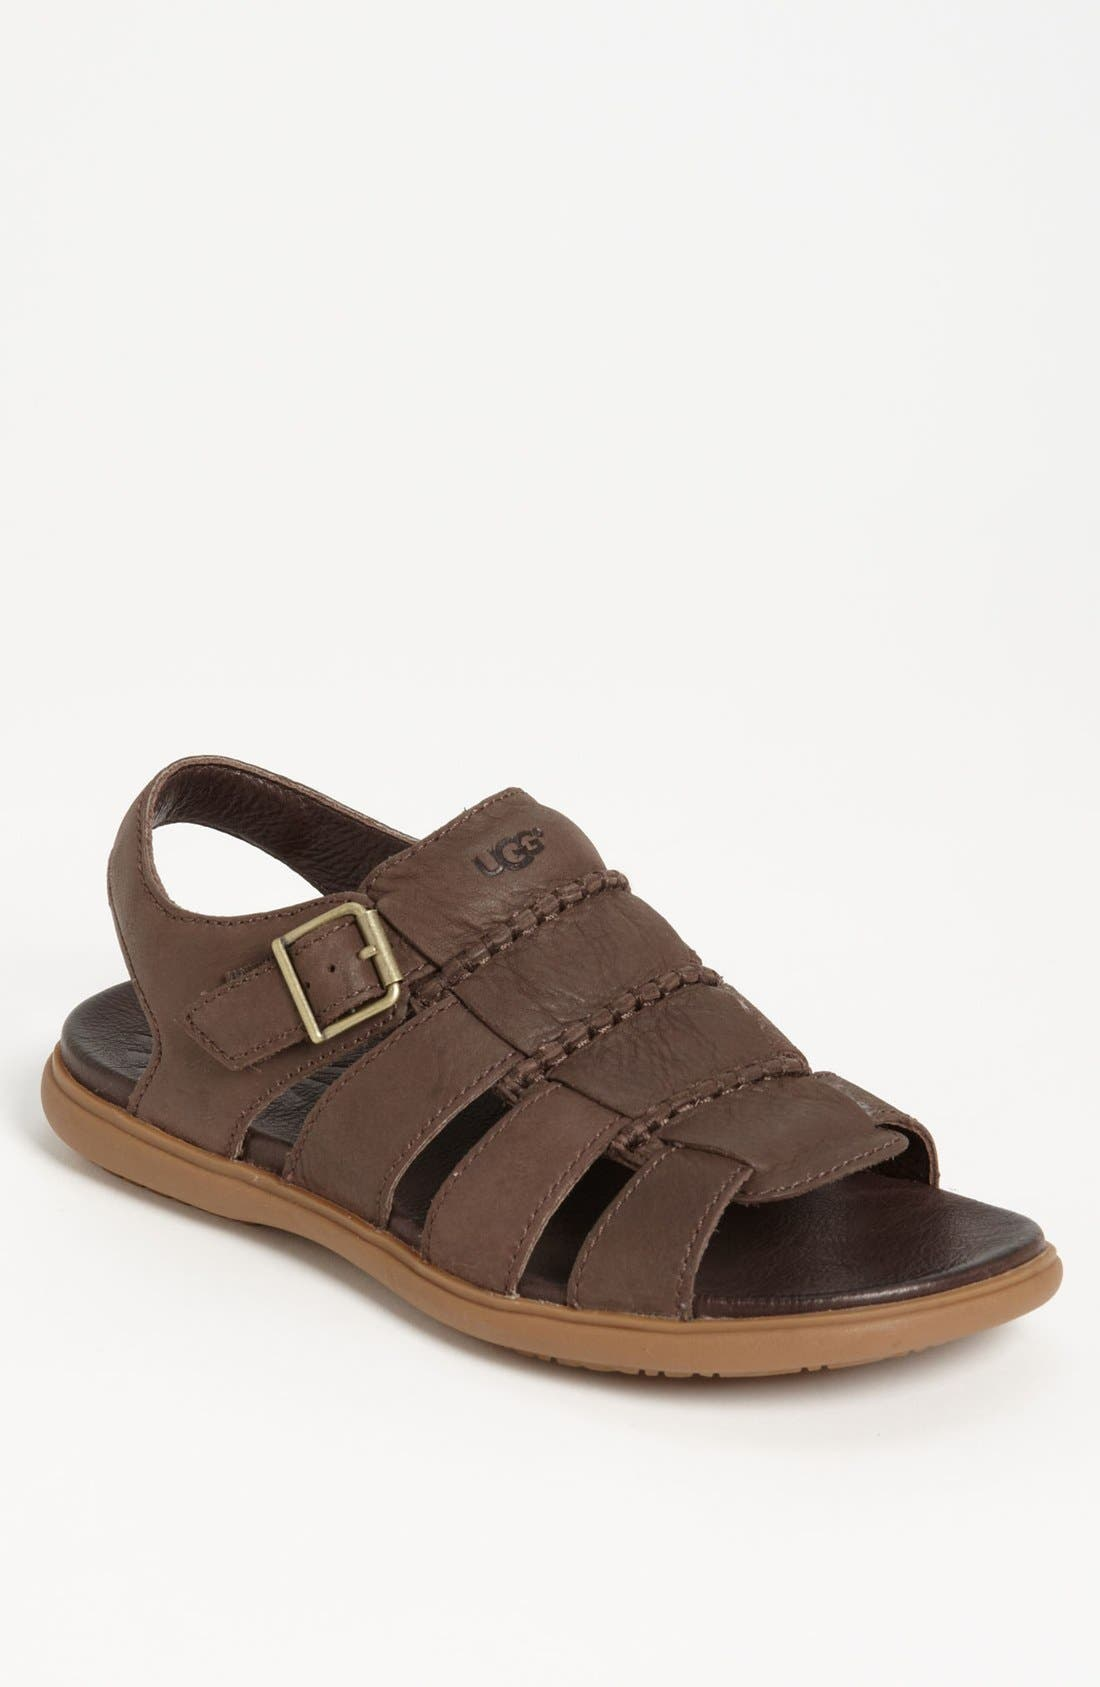 Alternate Image 1 Selected - UGG® Australia 'Roitman' Sandal (Men)